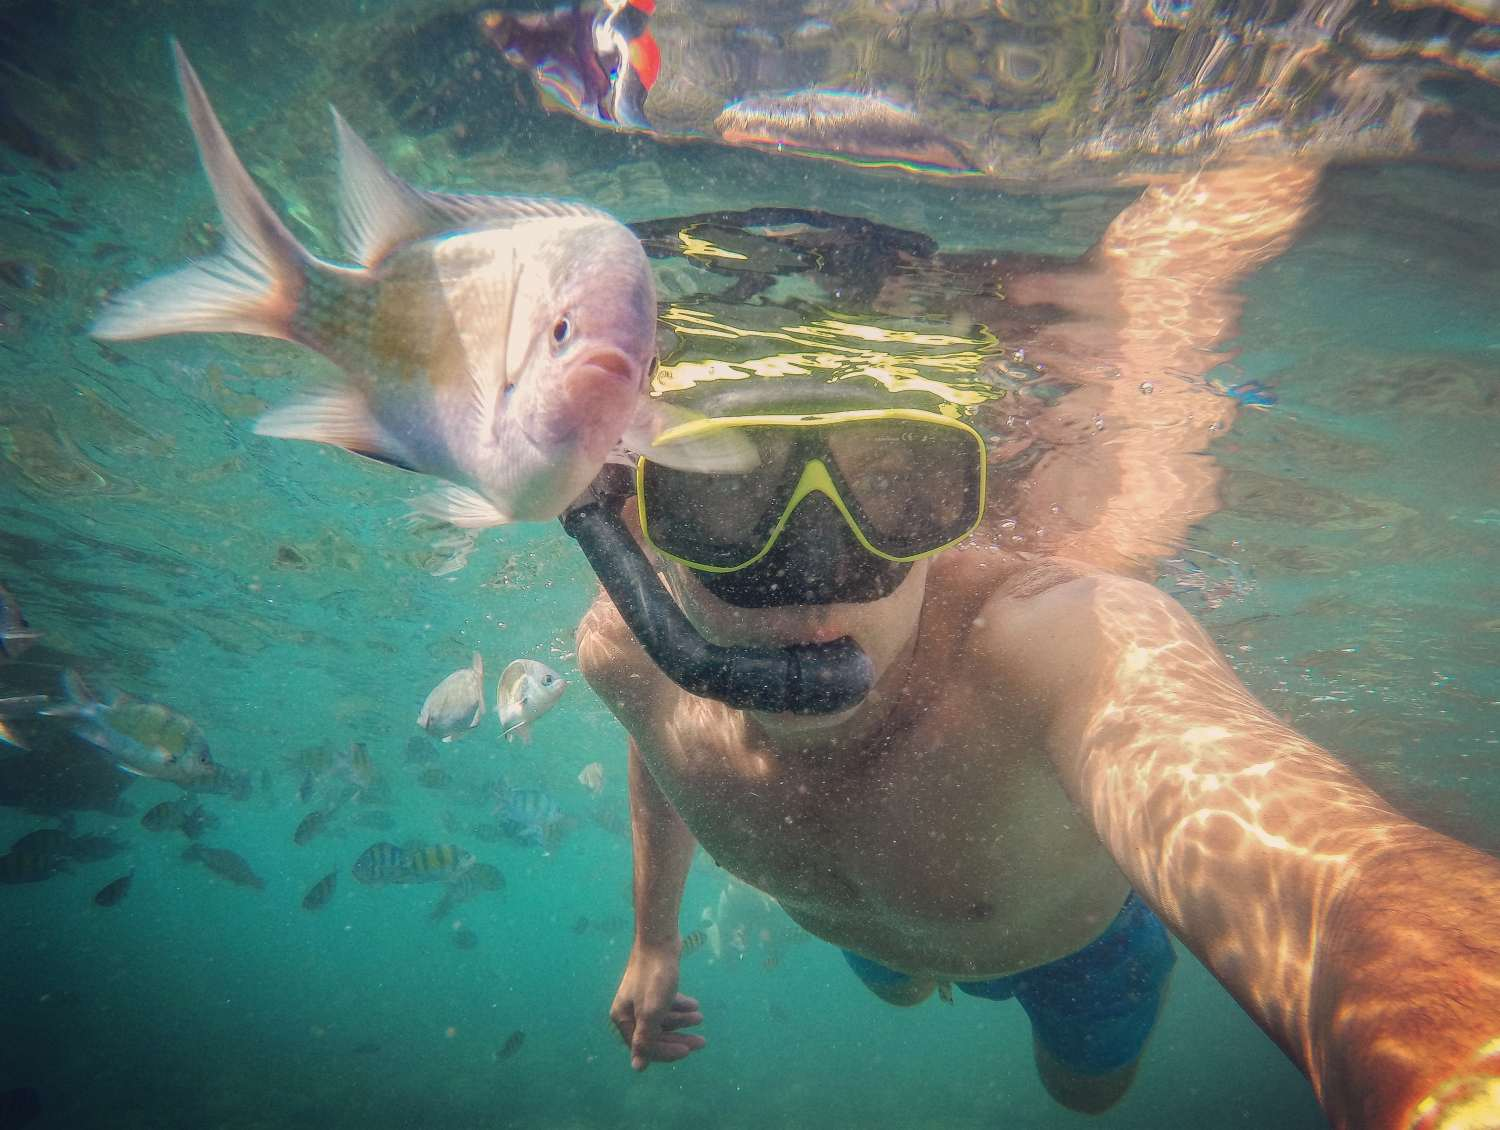 Snorkeling on Koh Phi Phi in Thailand